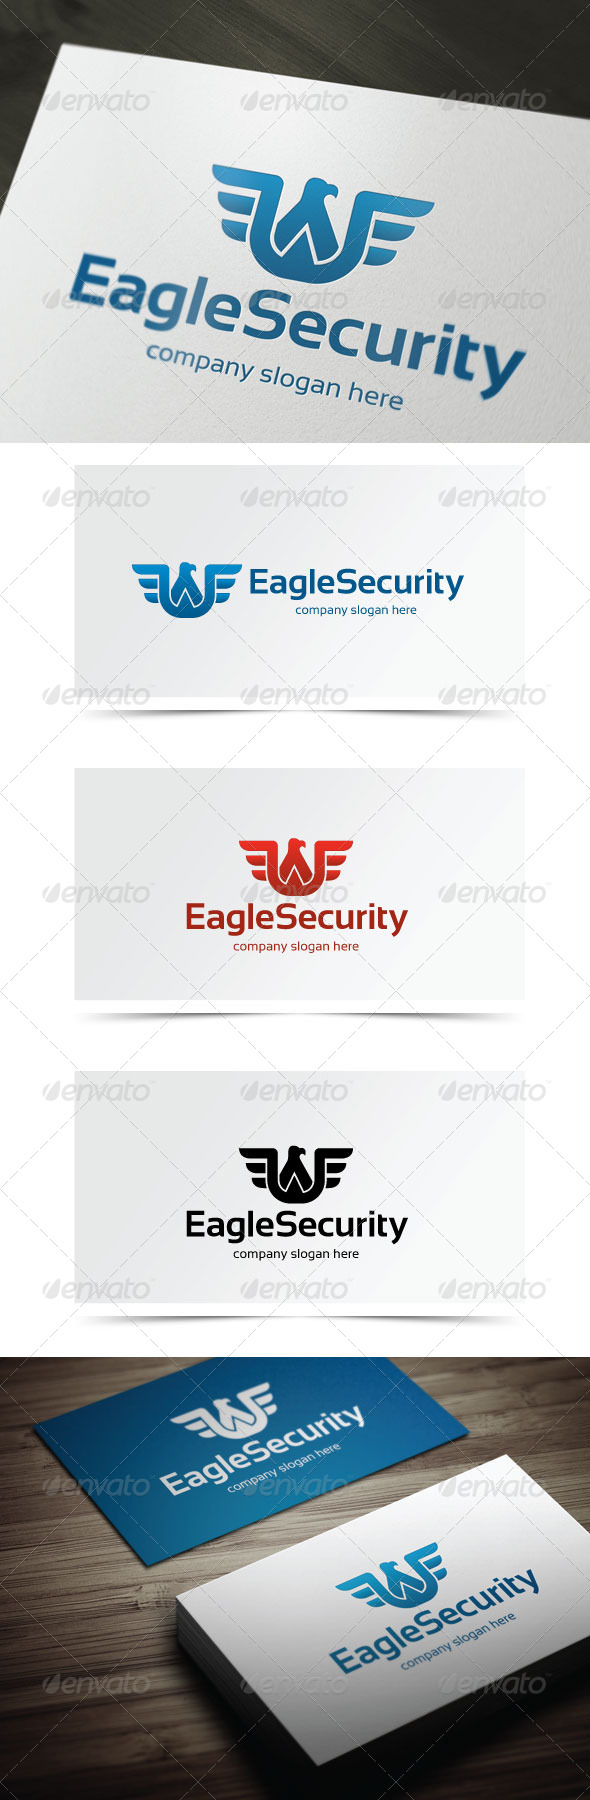 GraphicRiver Eagle Security 5658441